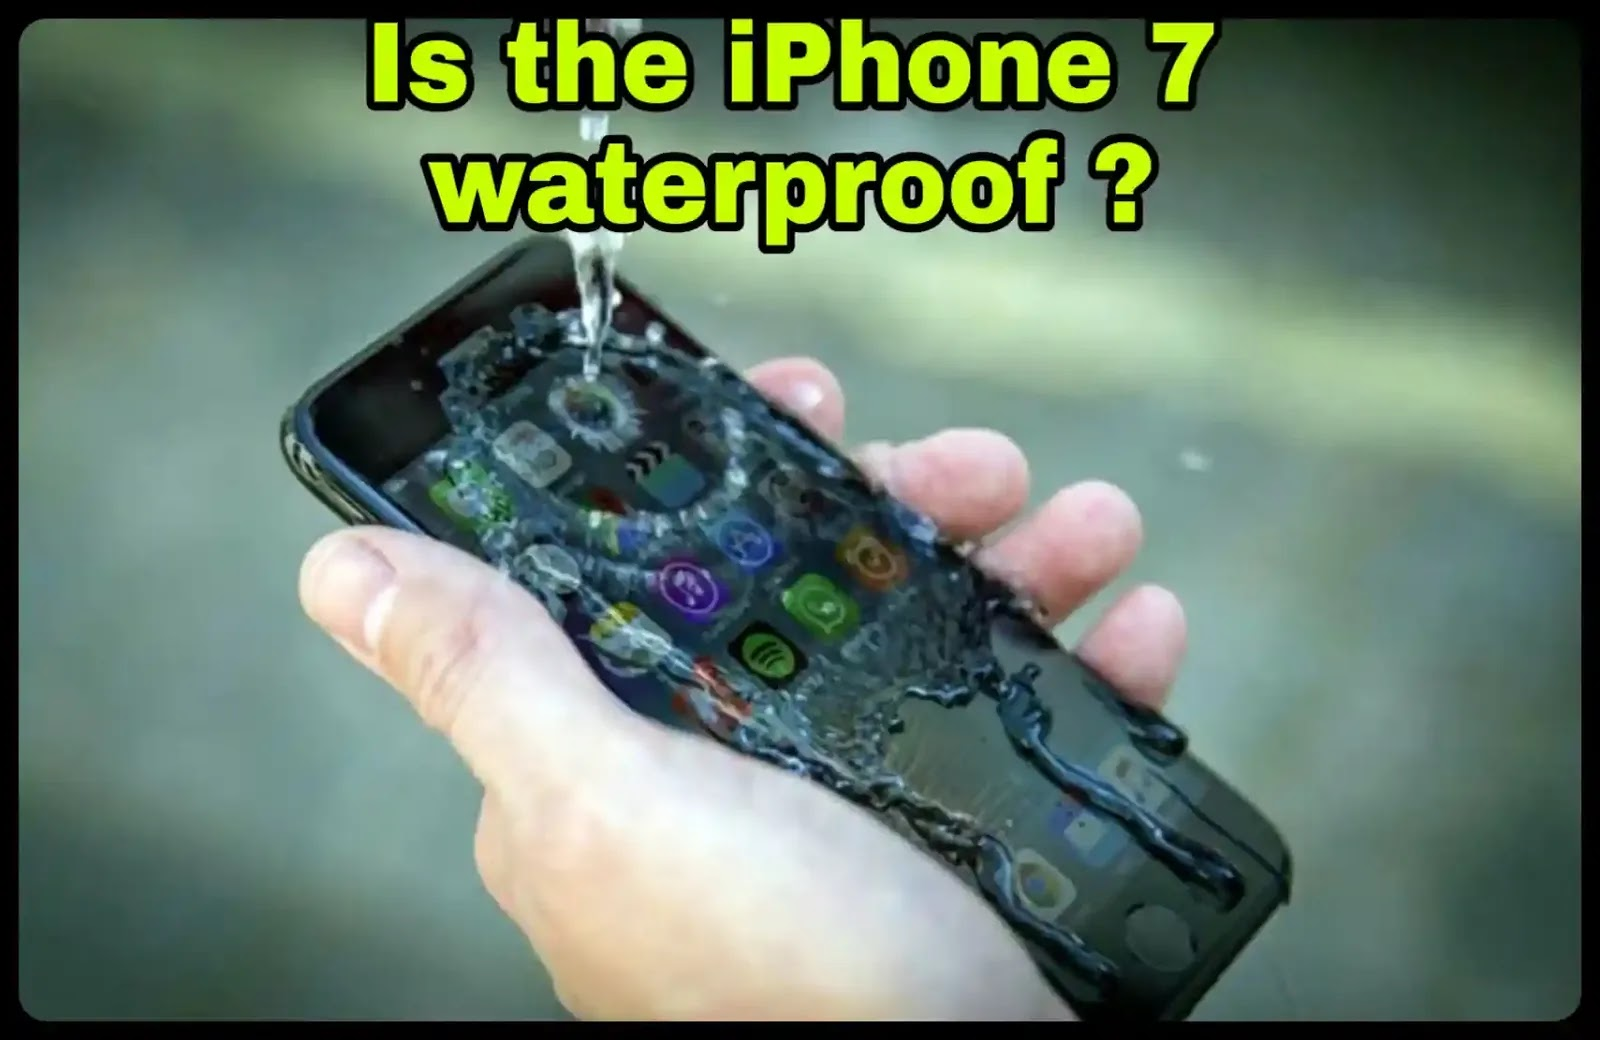 Is the iPhone 7 waterproof